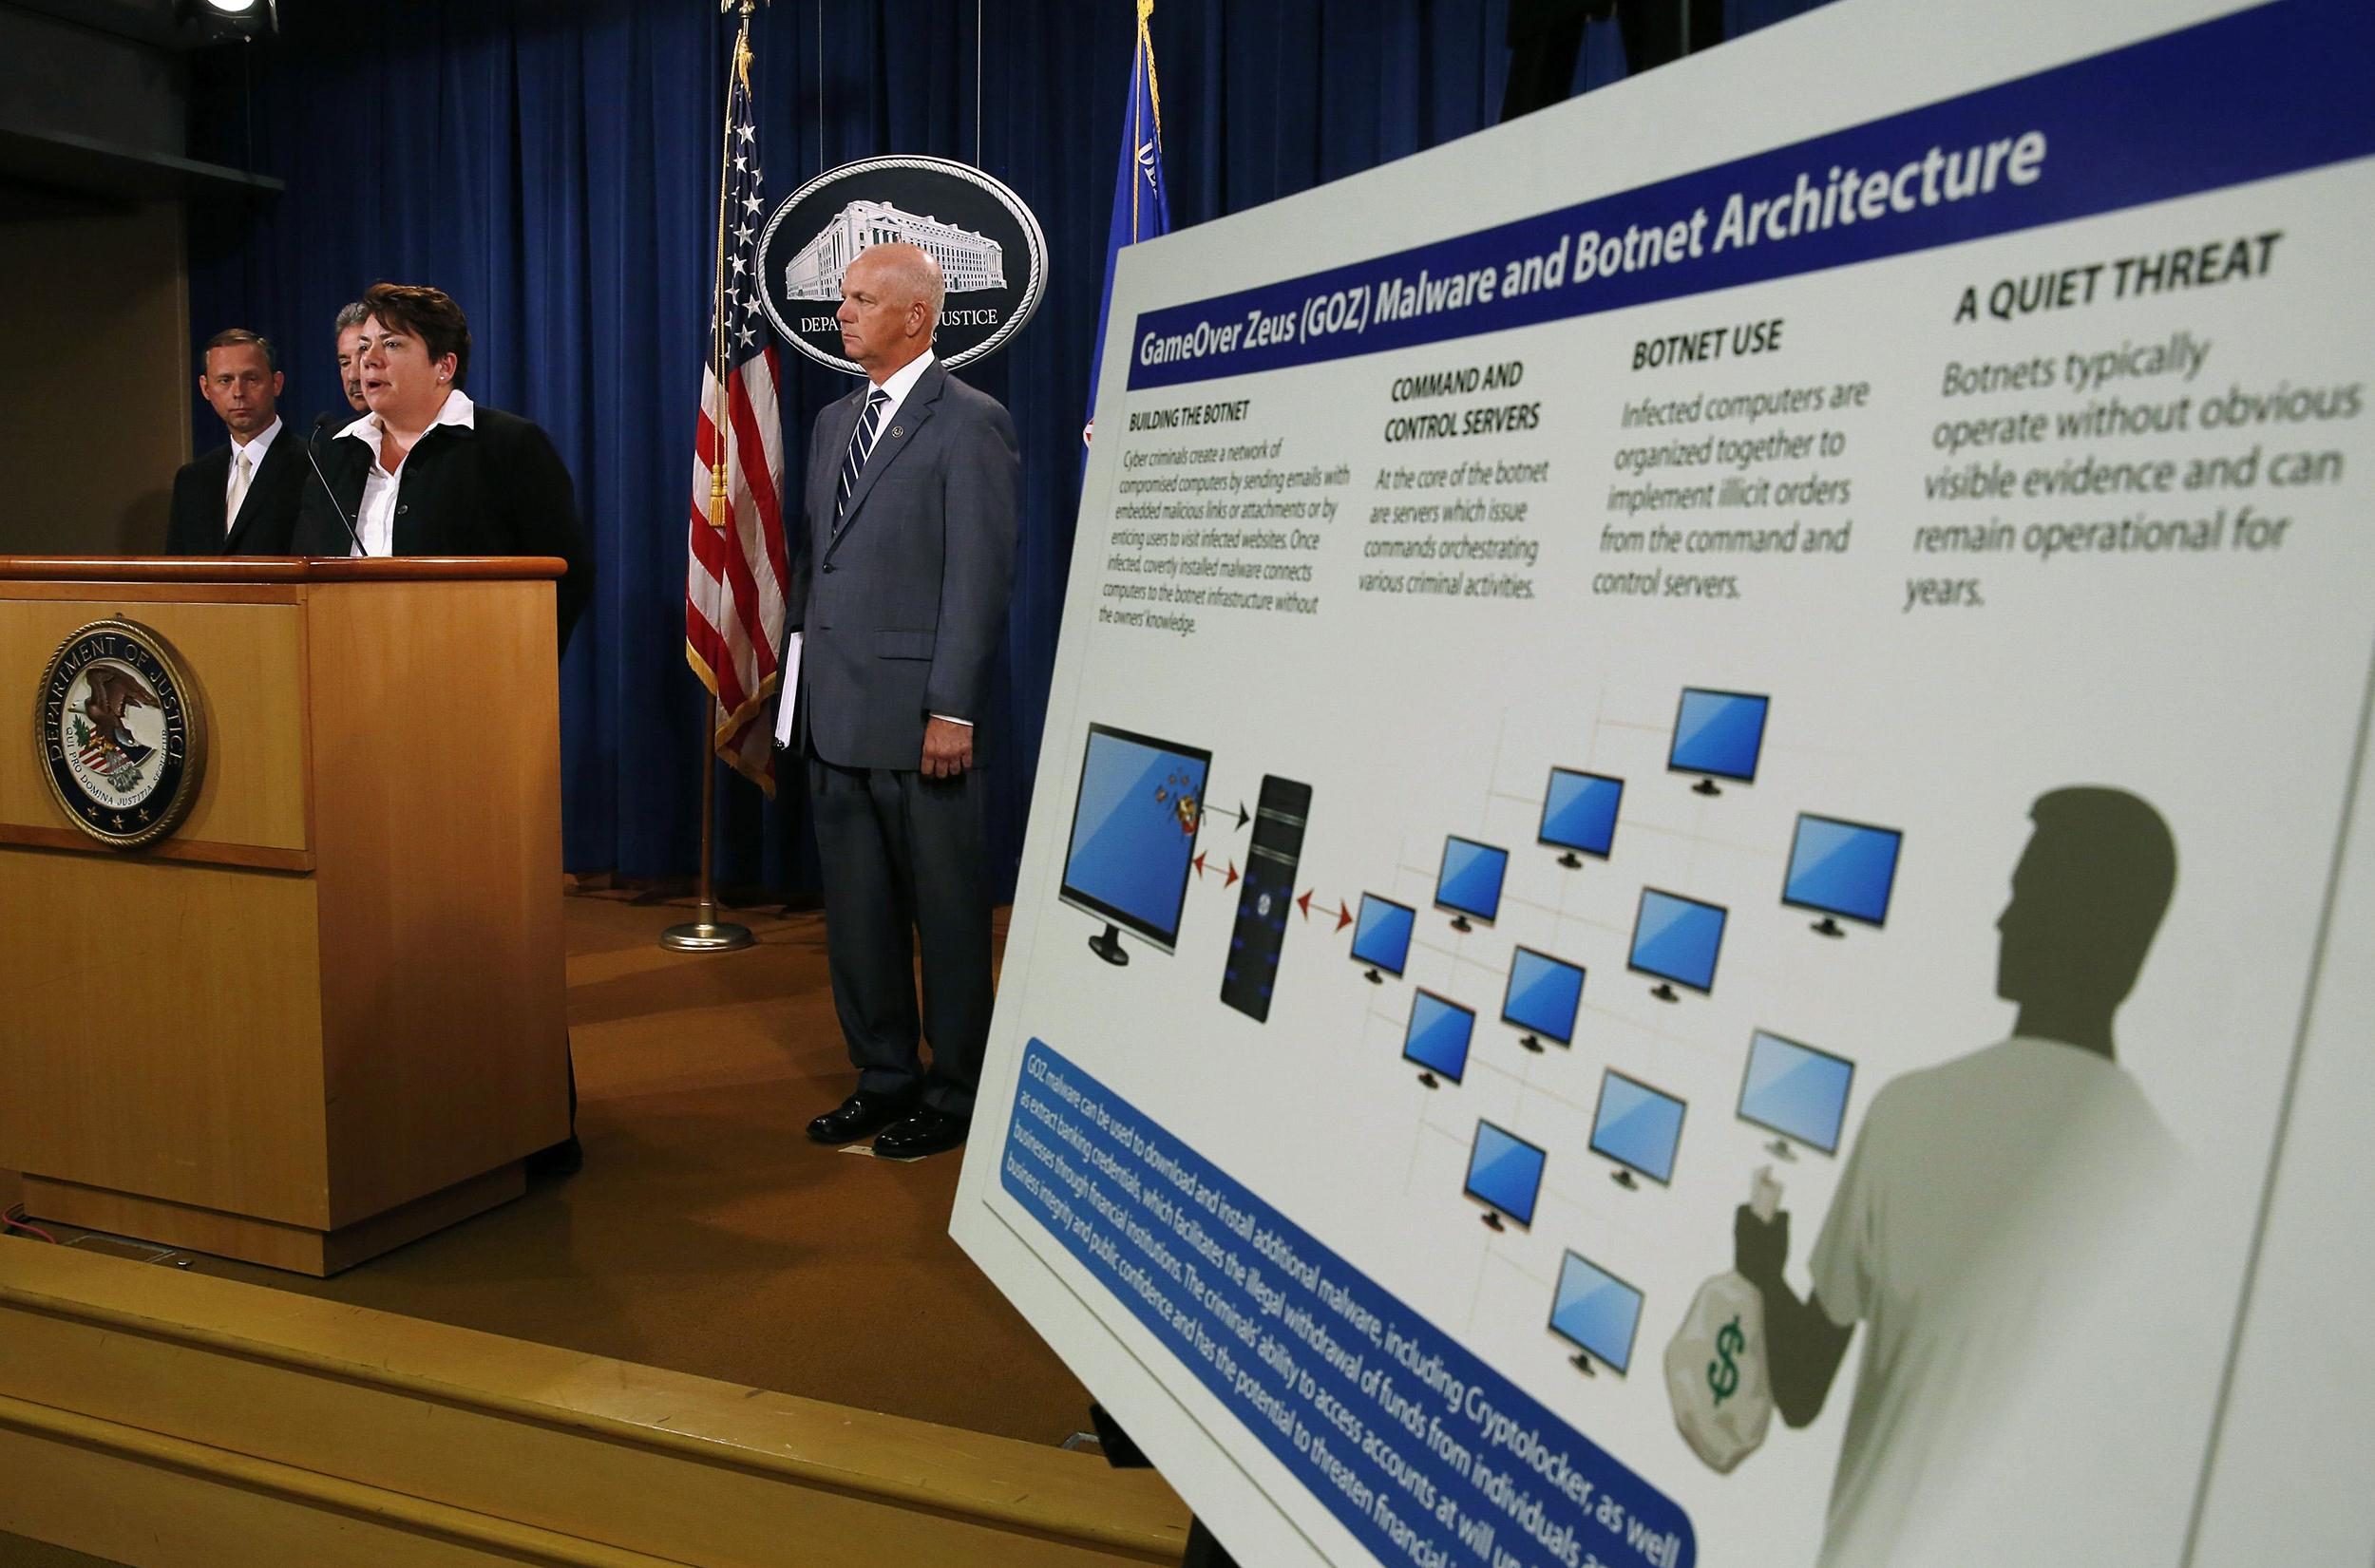 Image: U.S. Assistant Attorney General Caldwell of the Justice Department's Criminal Division announces criminal charges and two global cyber fraud disruptions, Gameover Zeus and Cyrptolocker, at the Department of Justice in Washington